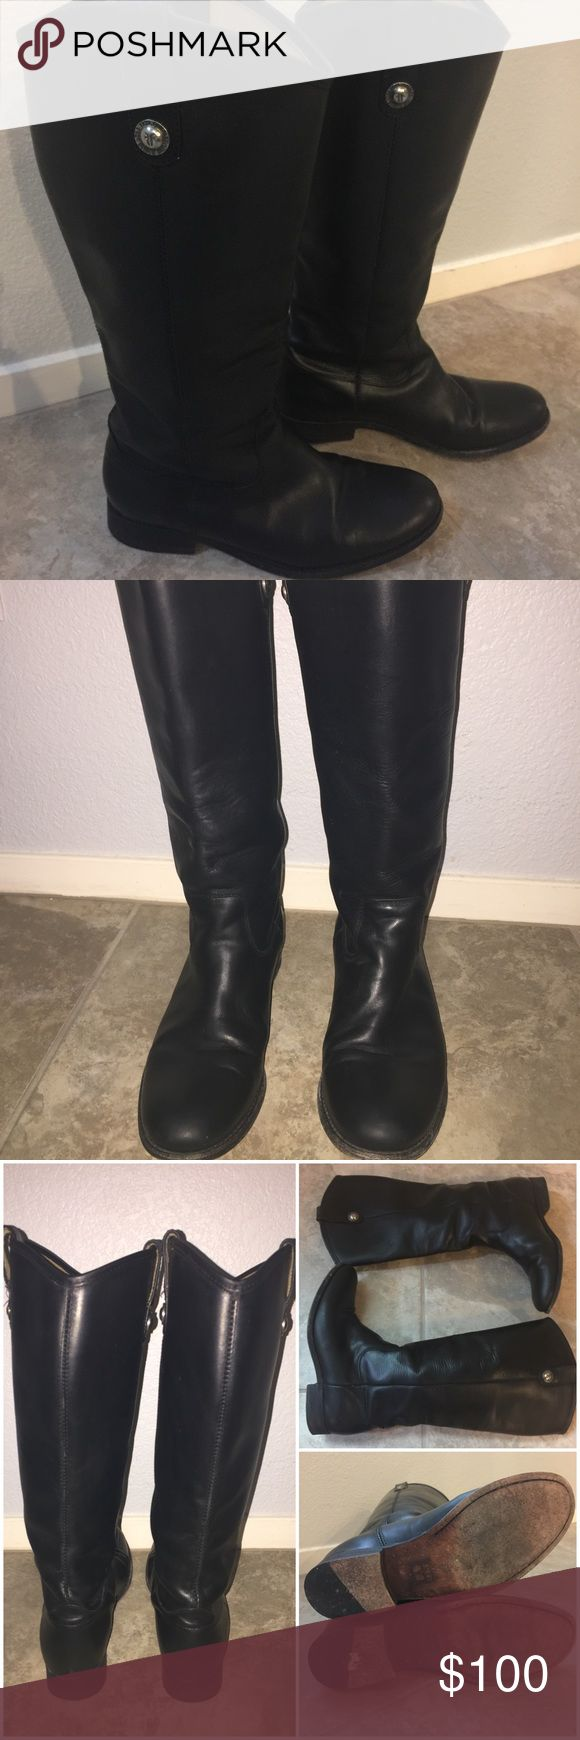 Frye Riding Boots (Black) Gorgeous Melissa riding boots in black. Excellent condition. Super comfy and goes with everything. They are just a tad bit too snug for my liking when I wear thicker socks. I'm still on the hunt for that perfect pair of Frye boots that fit exactly how I want them to fit 😊. Offers welcomed! Non-smoking household. Thanks for looking! Frye Shoes